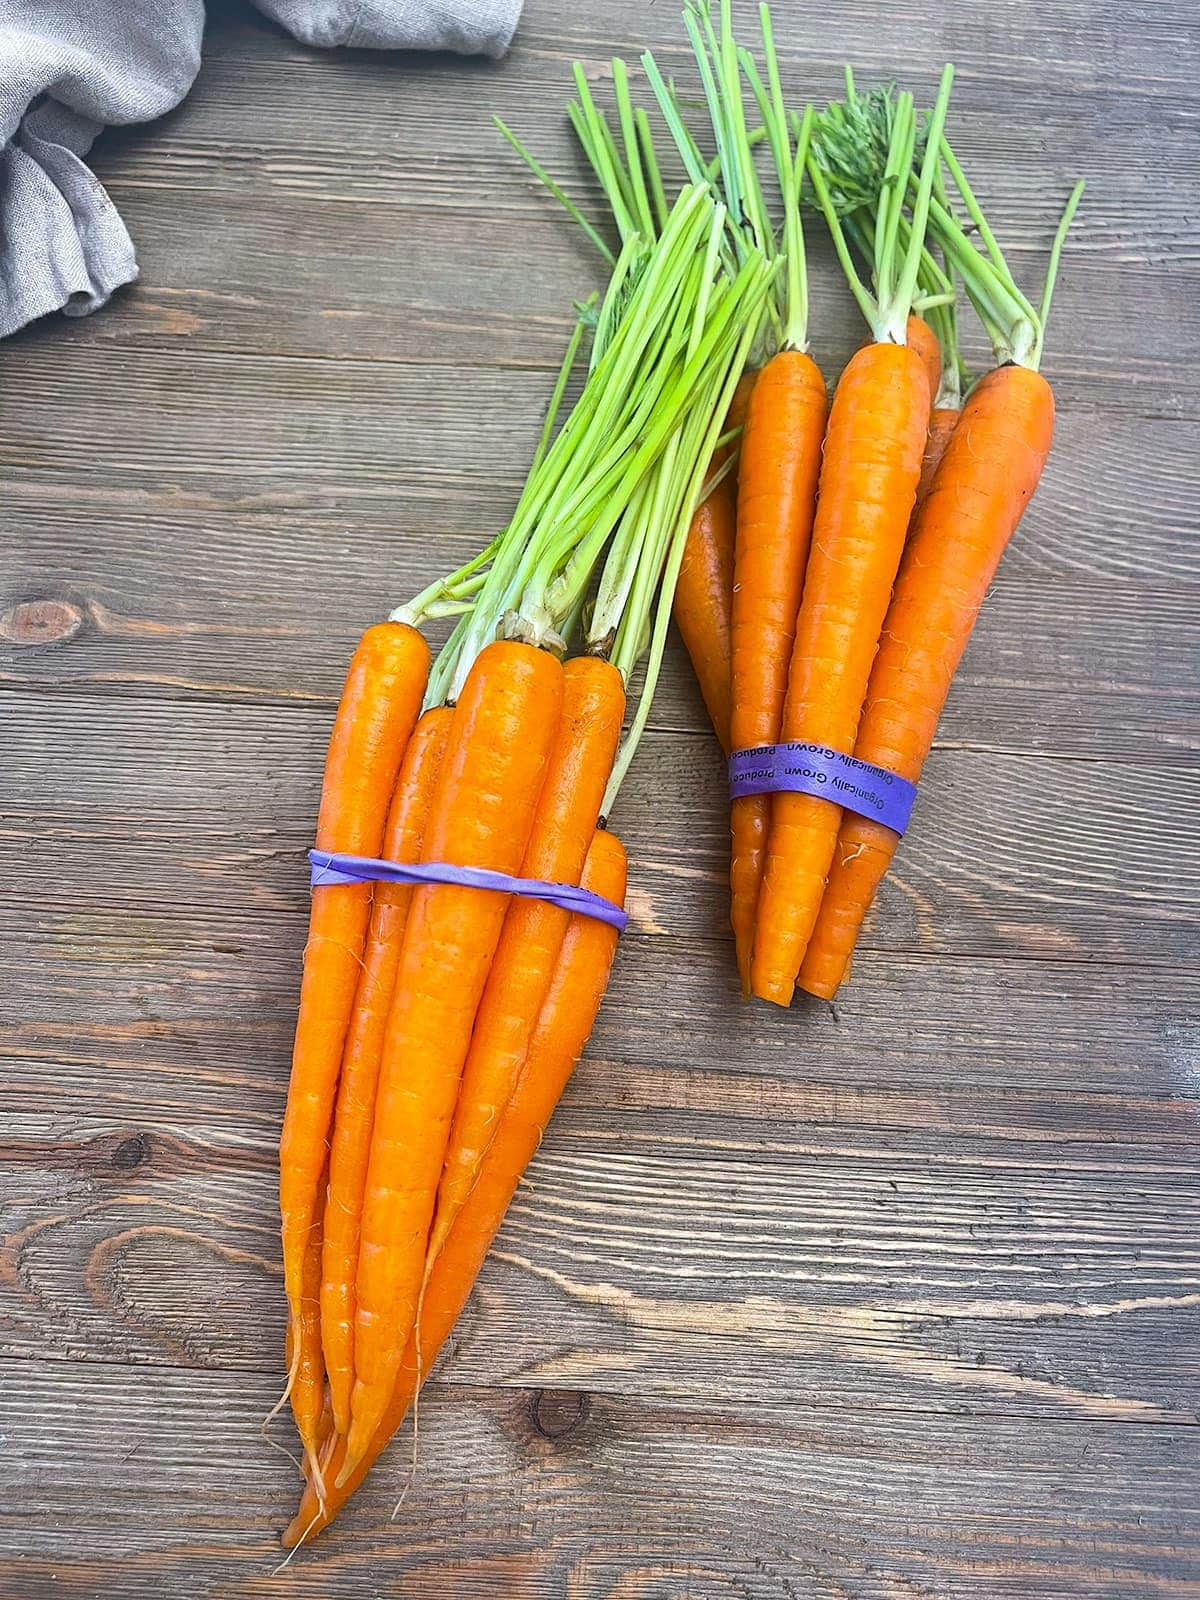 carrot bunches on a wooden board